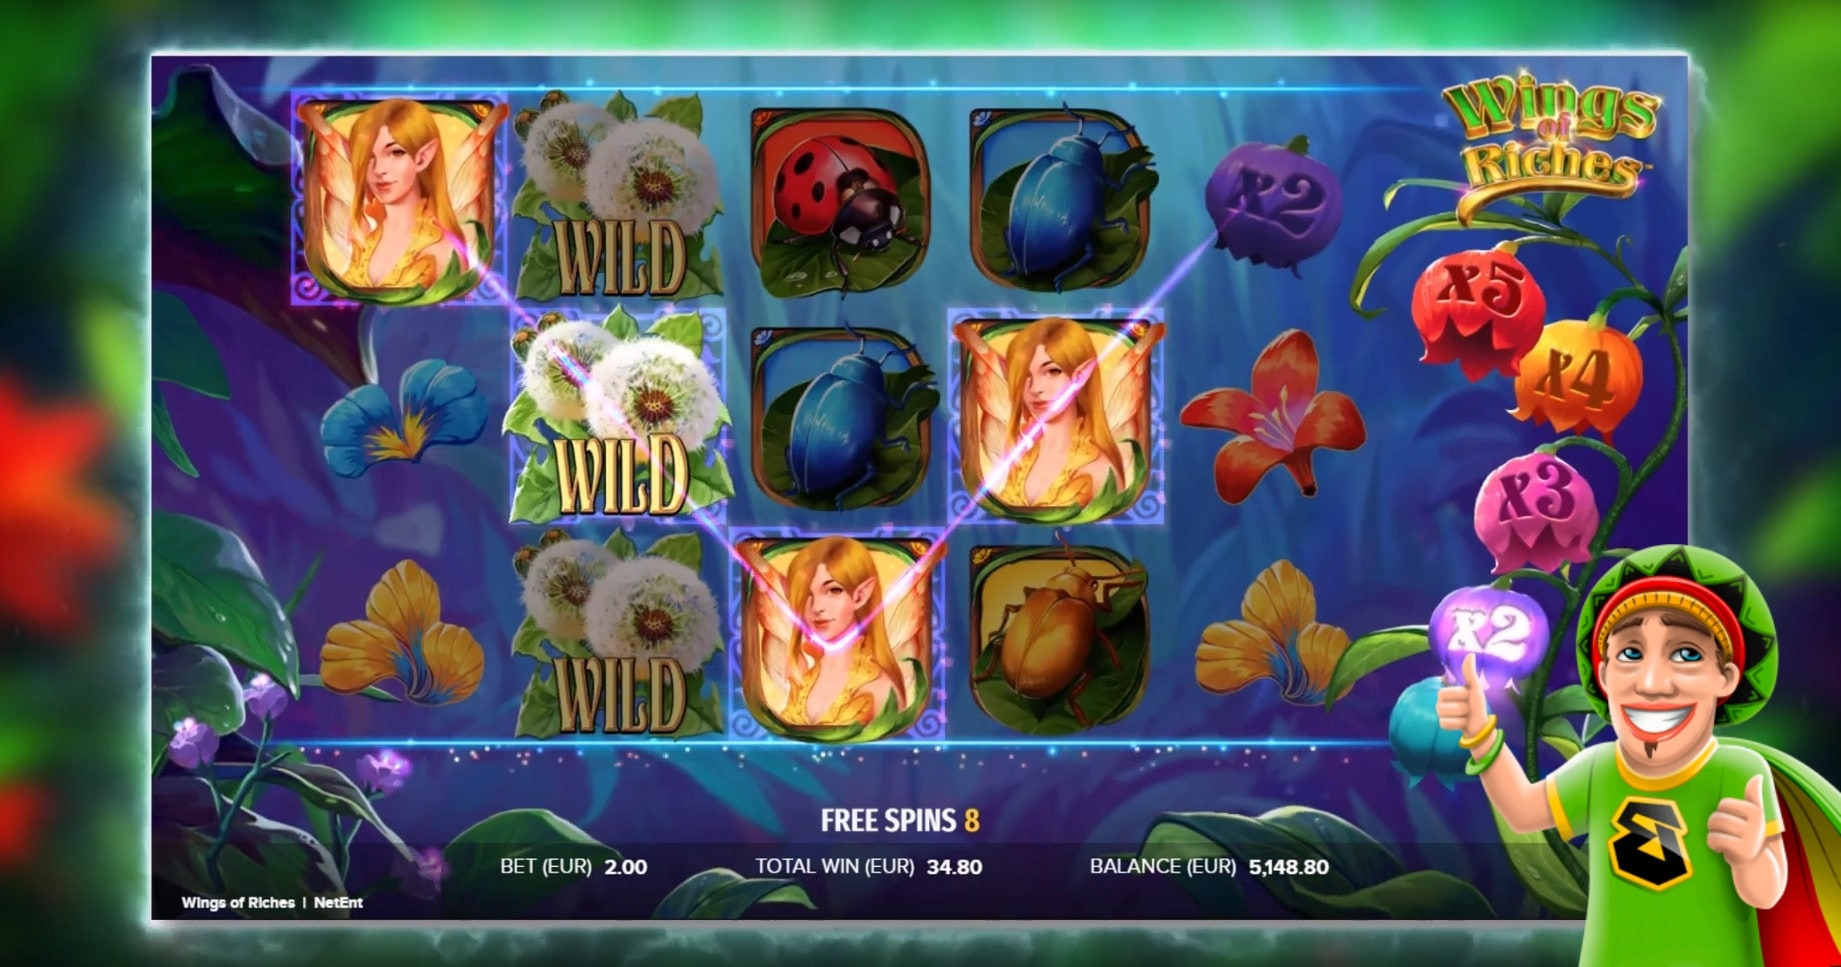 The reels in the Wings of Riches slot in a review from Bob Casino.